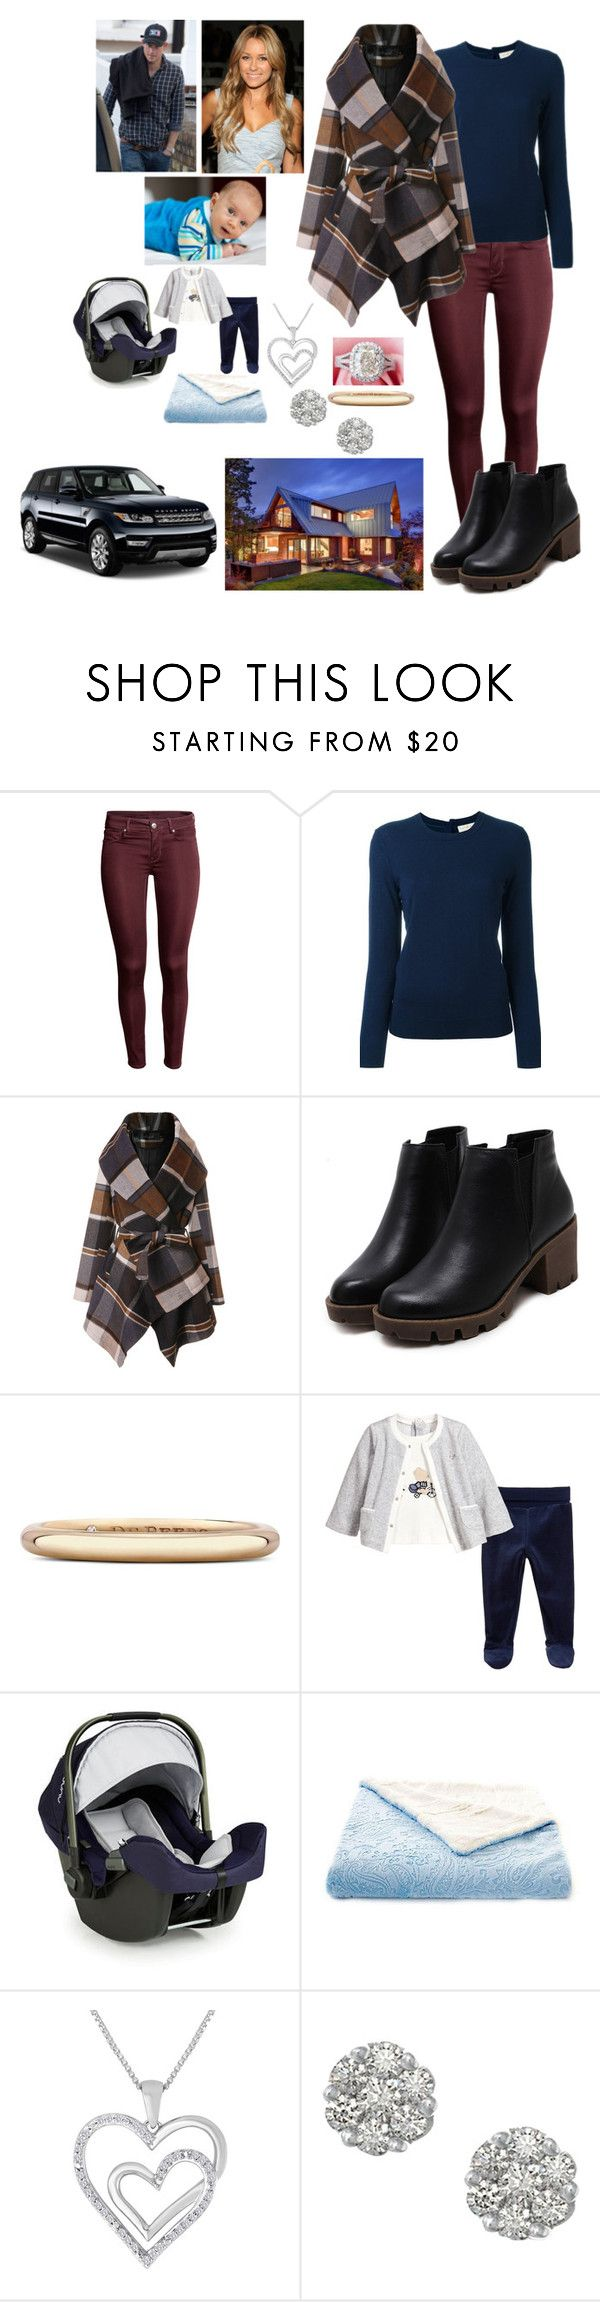 """""""Family go visited Lauren´s family"""" by royal-431 ❤ liked on Polyvore featuring Tory Burch, Chicwish, De Beers, Nuna, Lauren Conrad and Vanity Fair"""